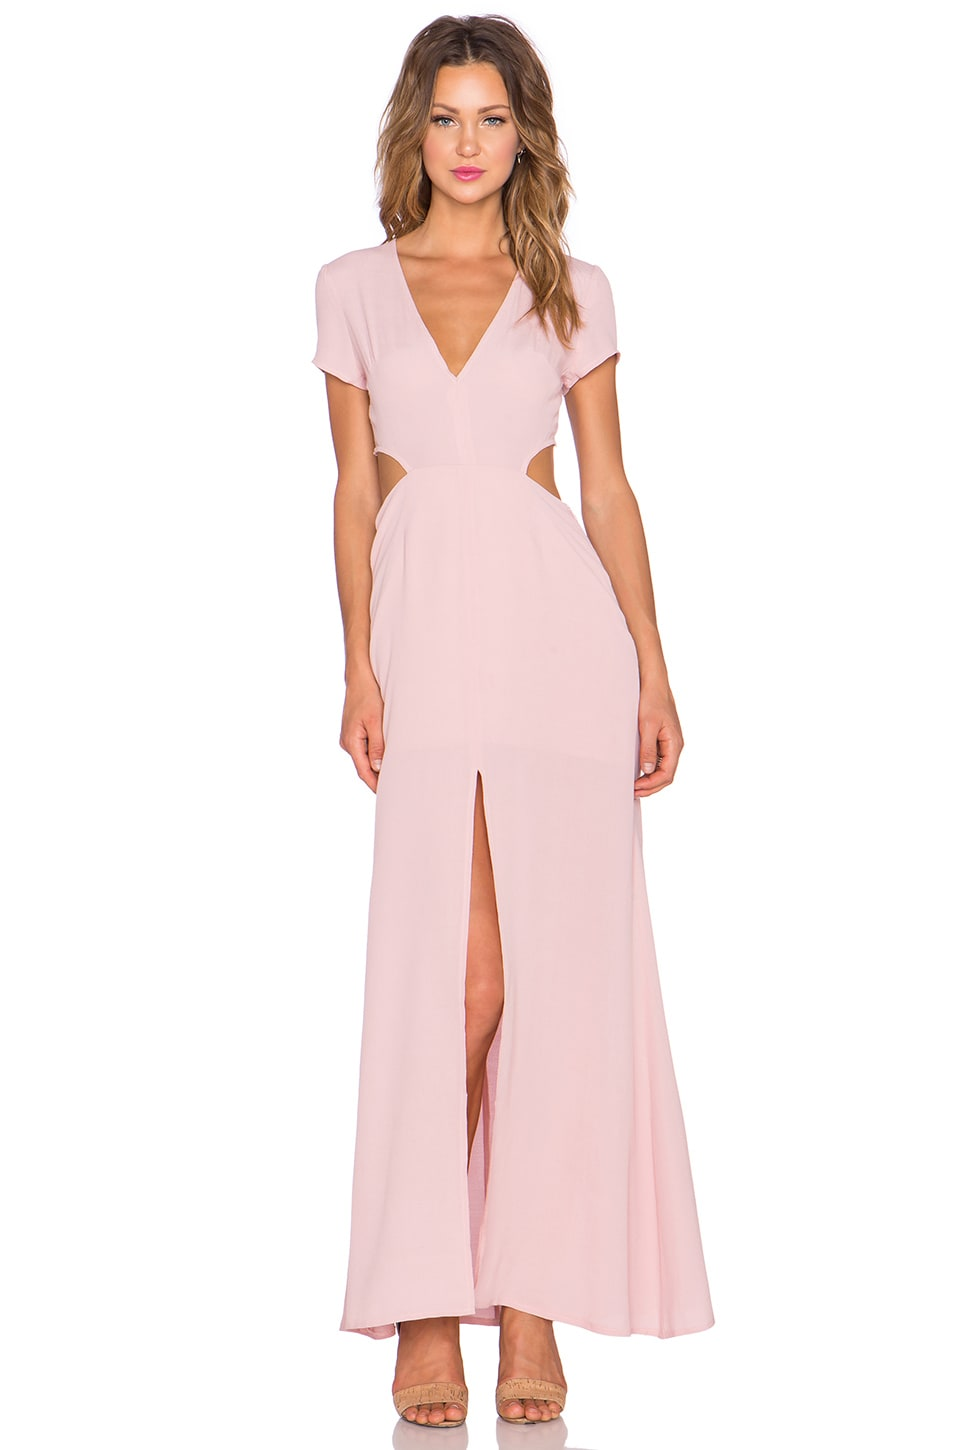 Lovers + Friends x REVOLVE Harper Dress in Pale Pink